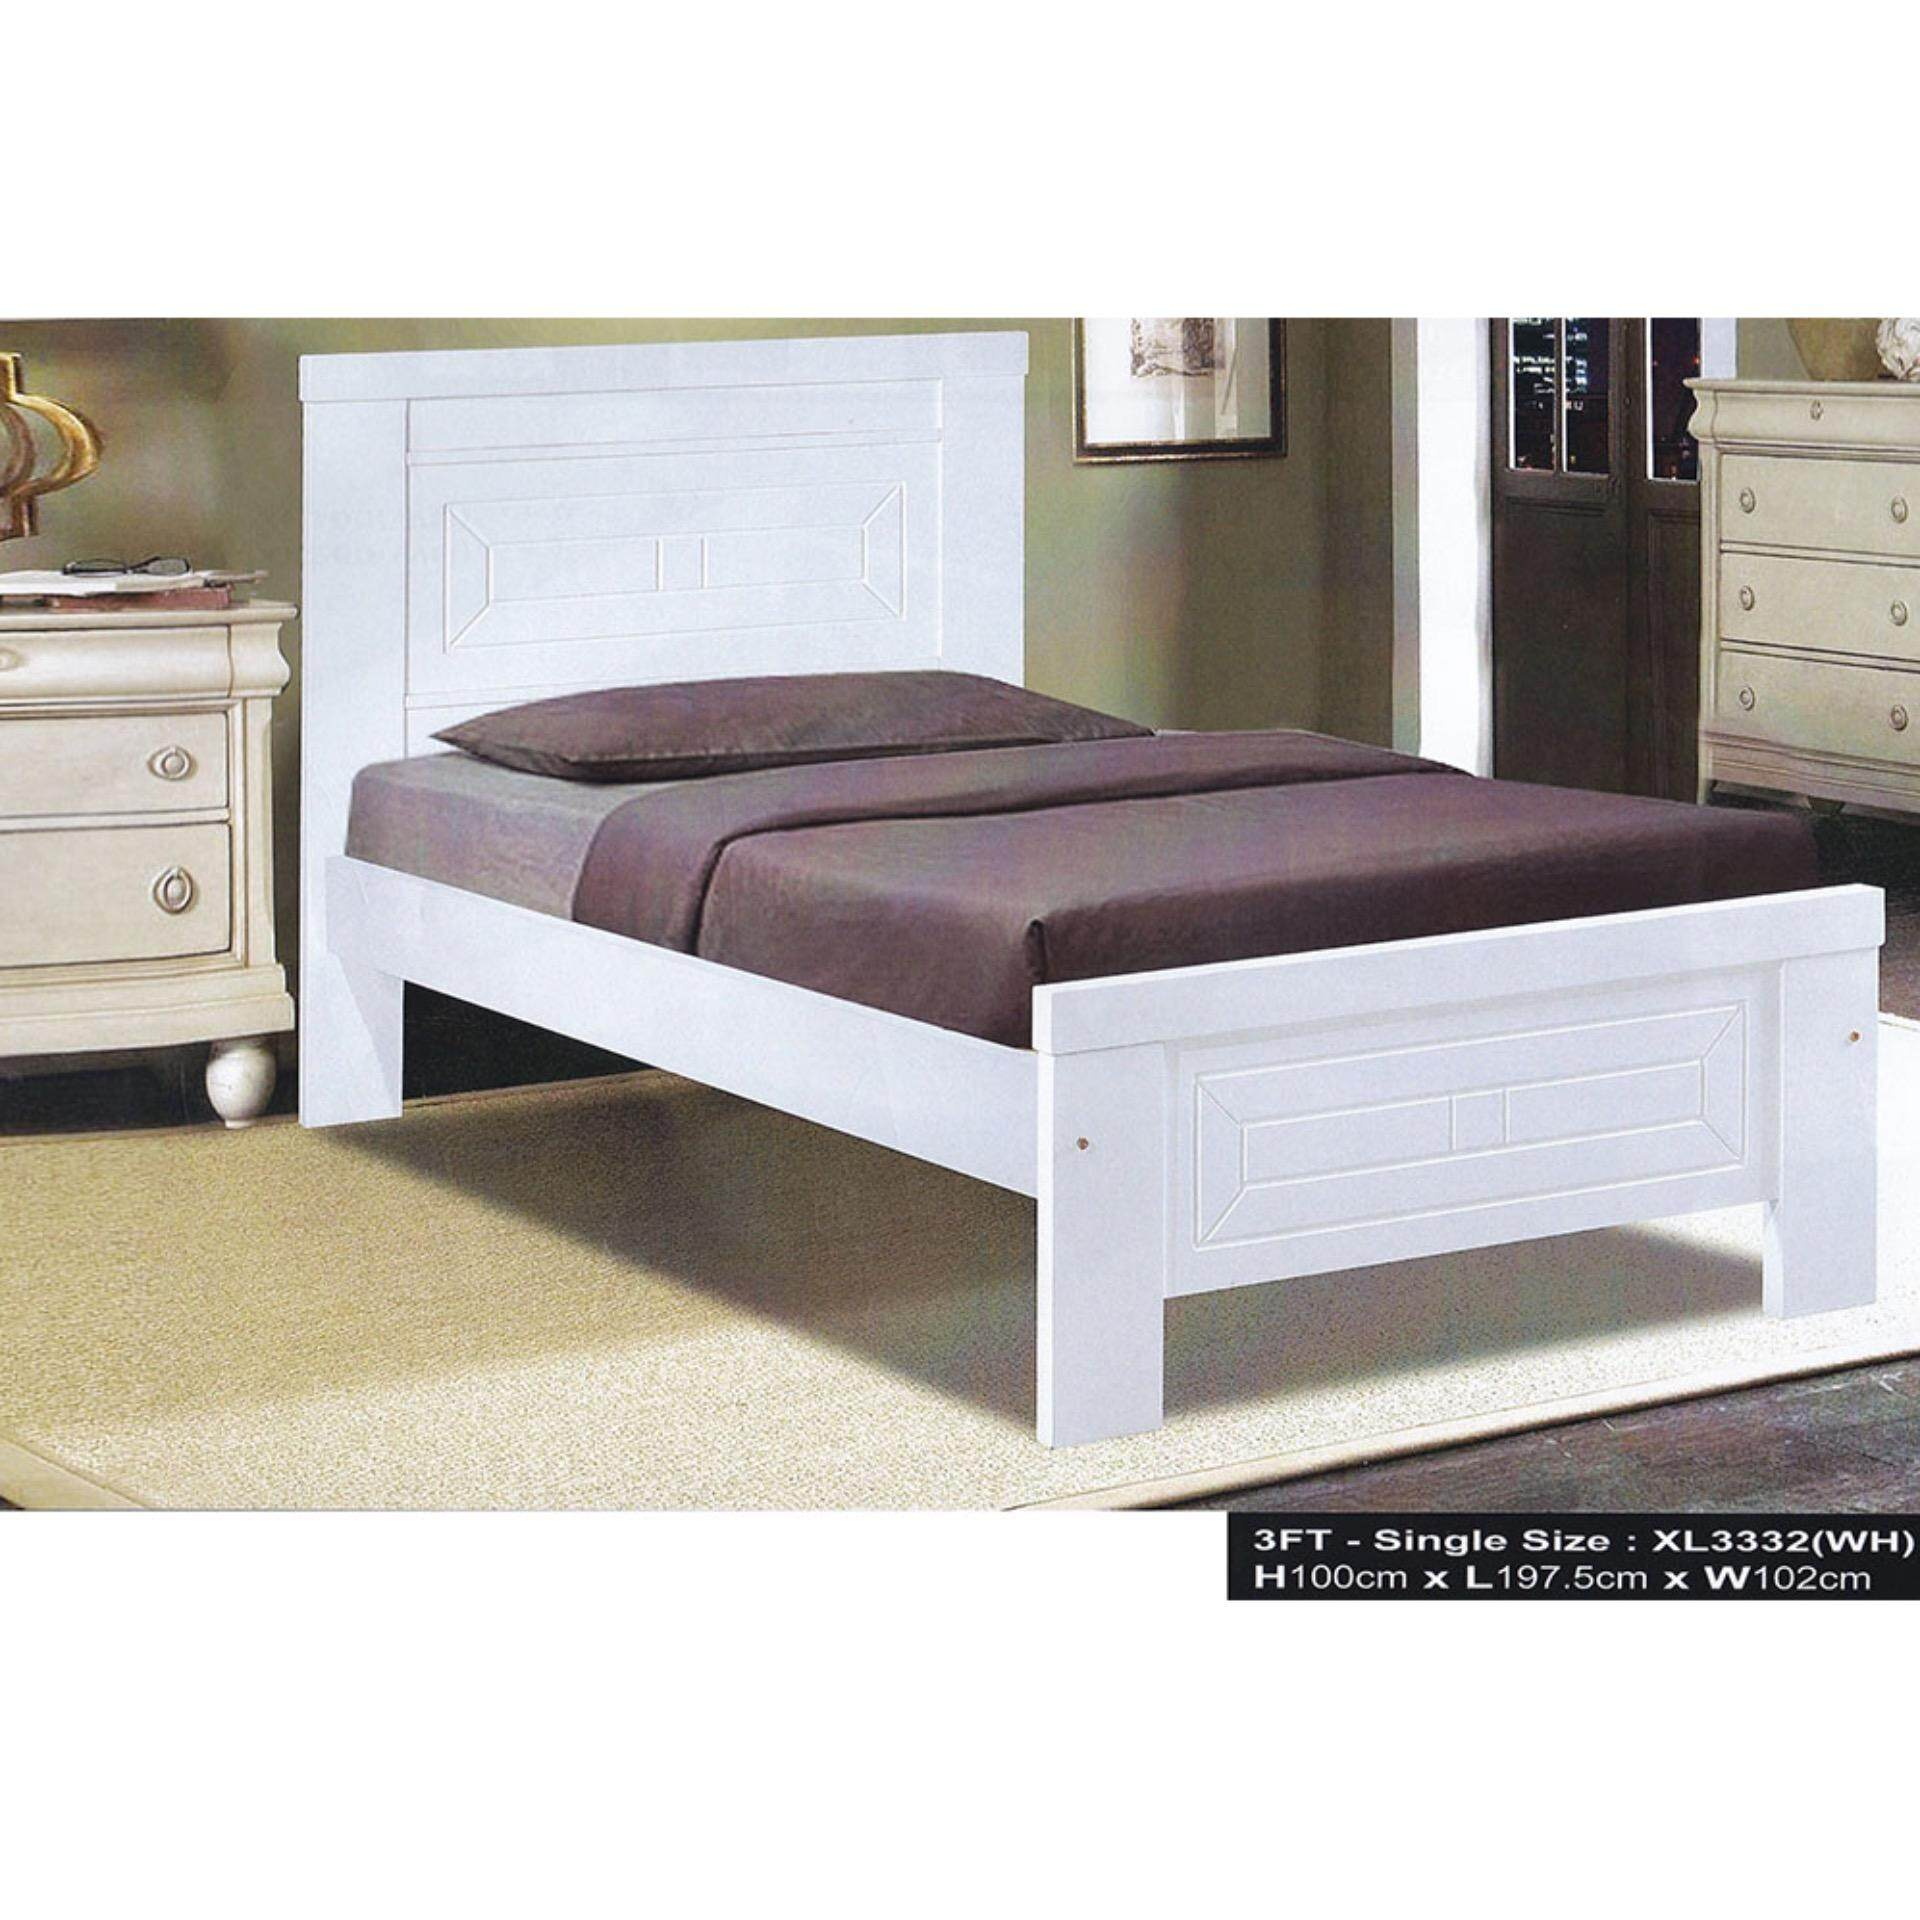 Solid Wood Strong Single Wooden Bed XL3332 (White) L1975MM X W1020MM X H1000MM